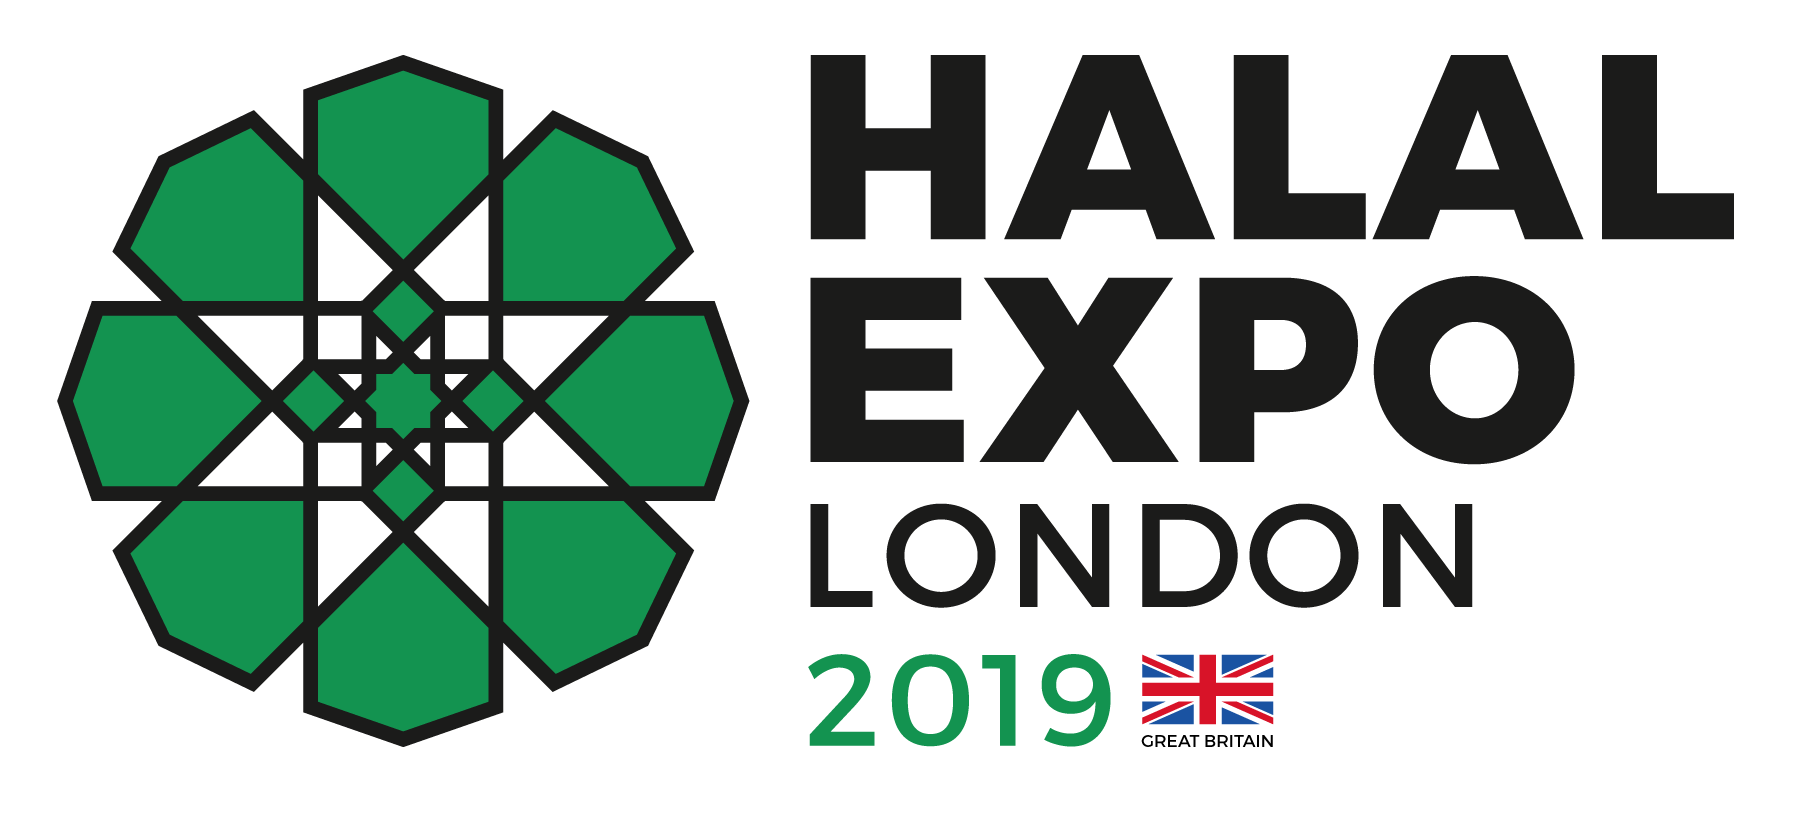 Halal Expo London 5th 6th 7th Dec 2019